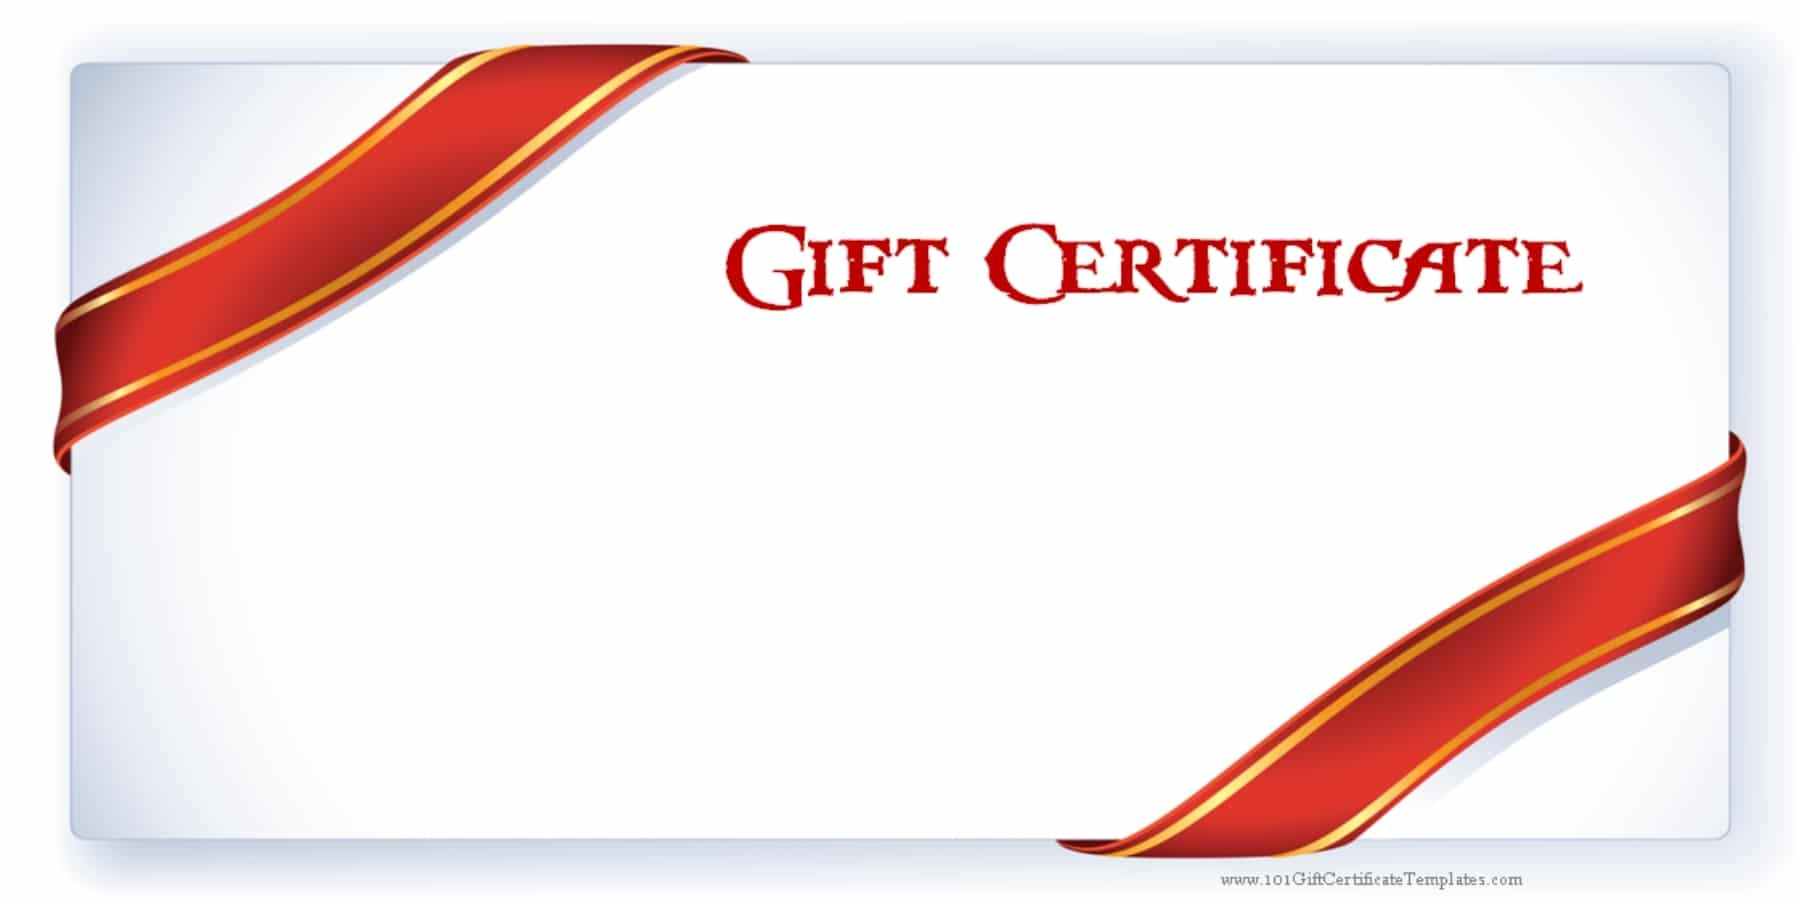 Printable Gift Certificate Templates - Free Printable Gift Certificate Template